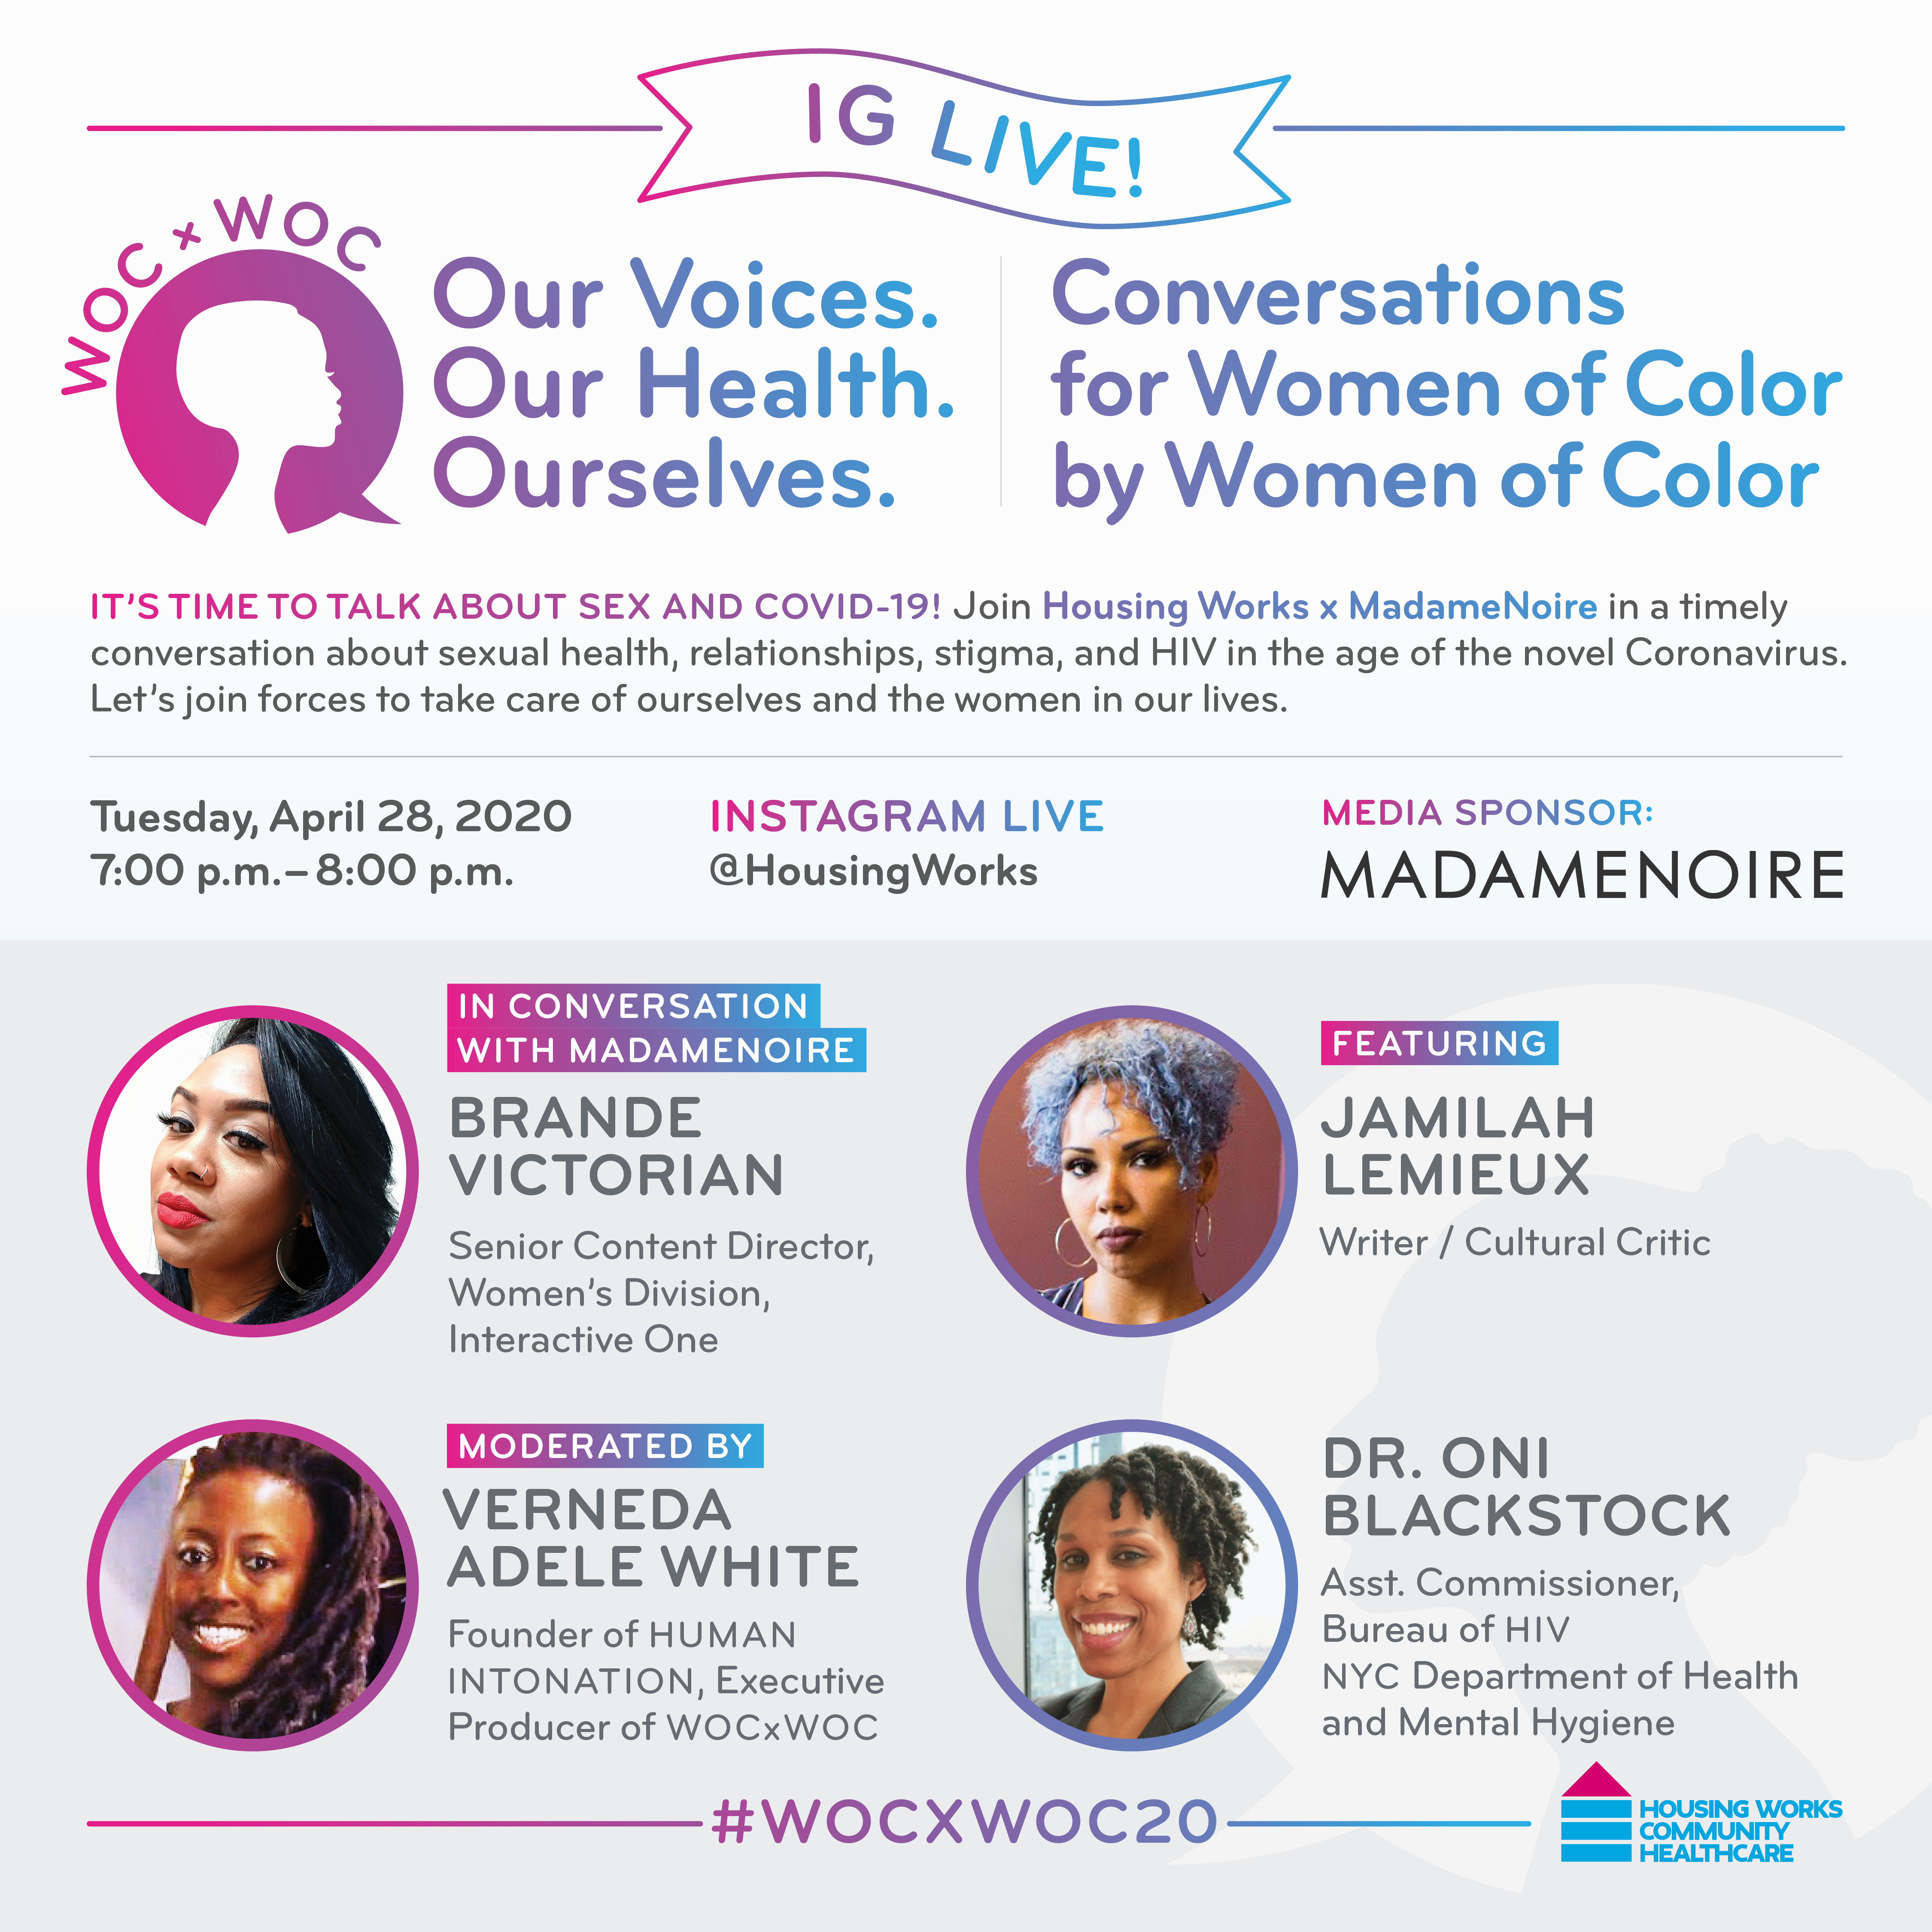 WOC x WOC: Our Voices, Our Health, Ourselves